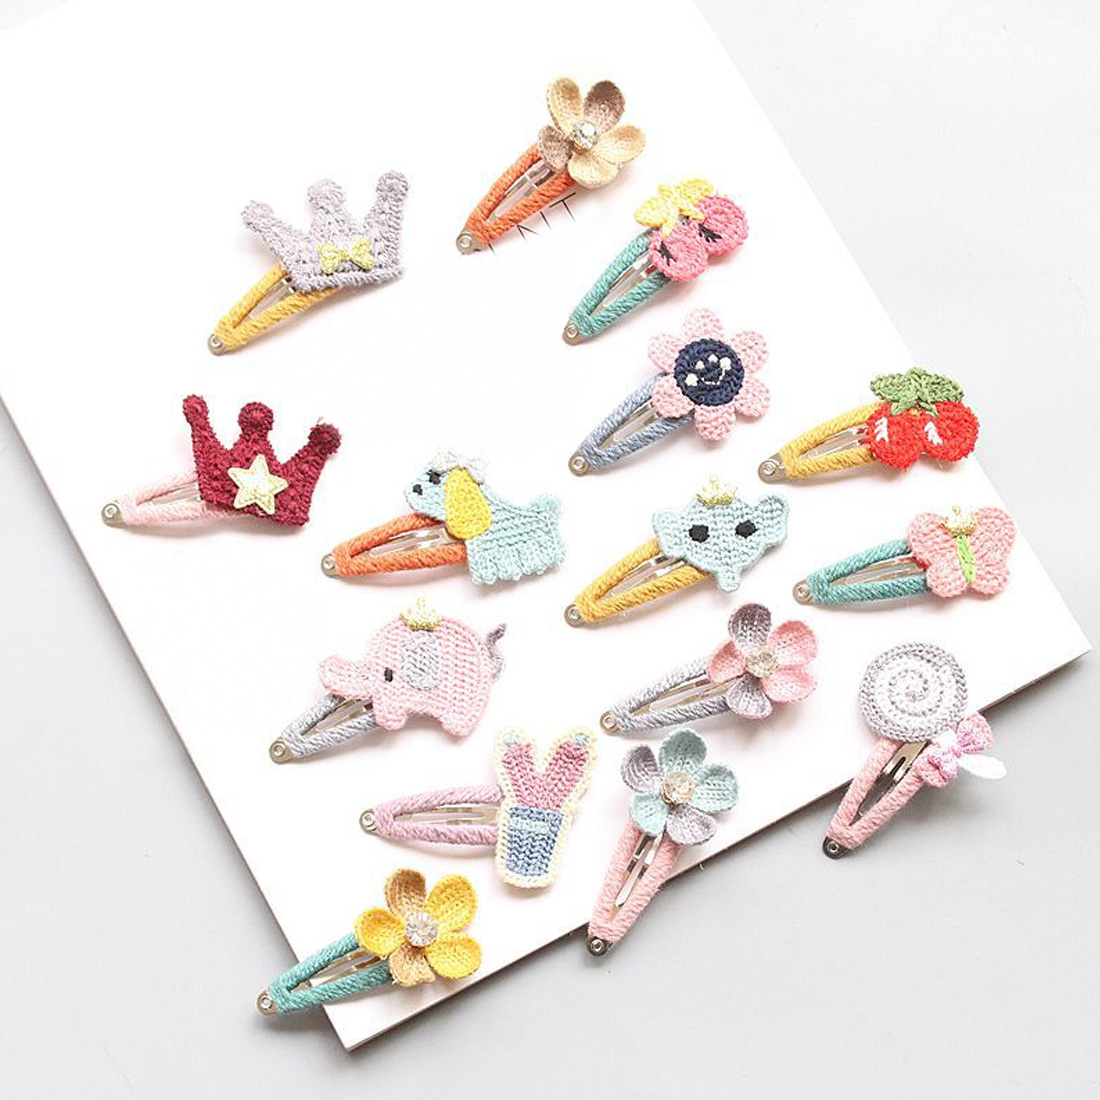 Kids Infant Lovely Cute Fashion Hairpin Baby Girl Cartoon Animal Motifs Clip Set Beautiful Hair Accessories